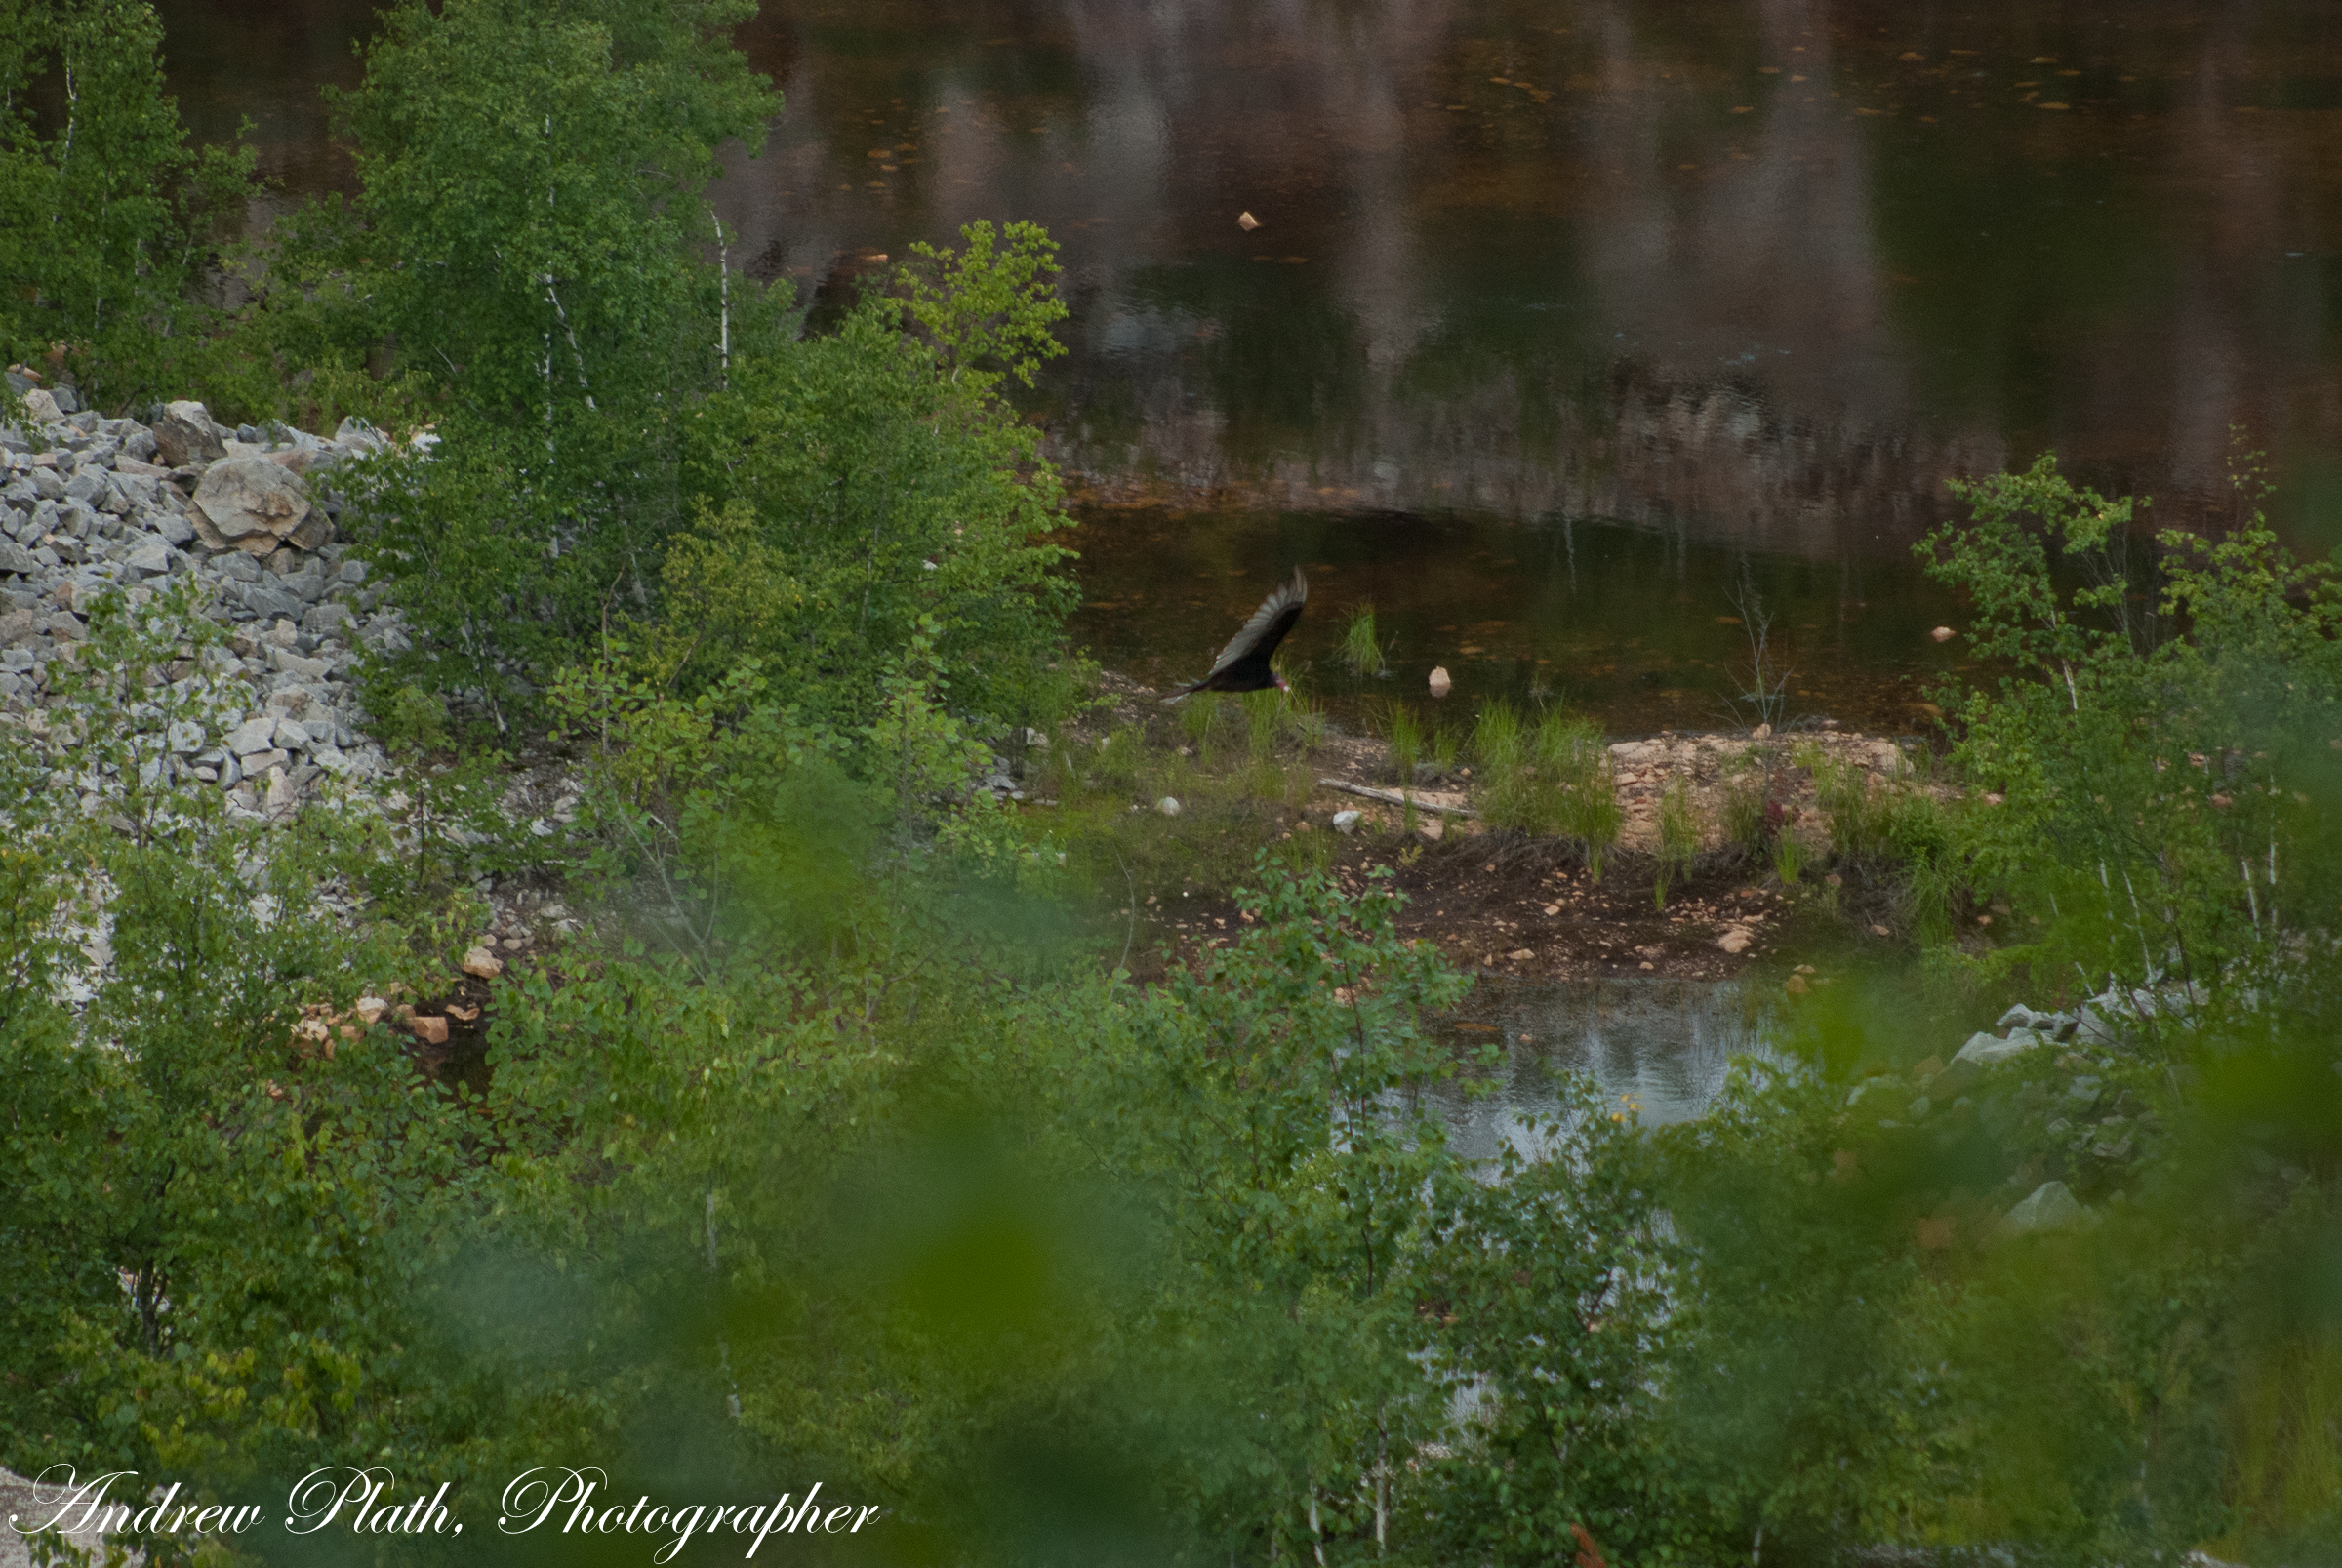 A Turkey Vulture searches for carion in and around the quarry at Rib Mountain State Park